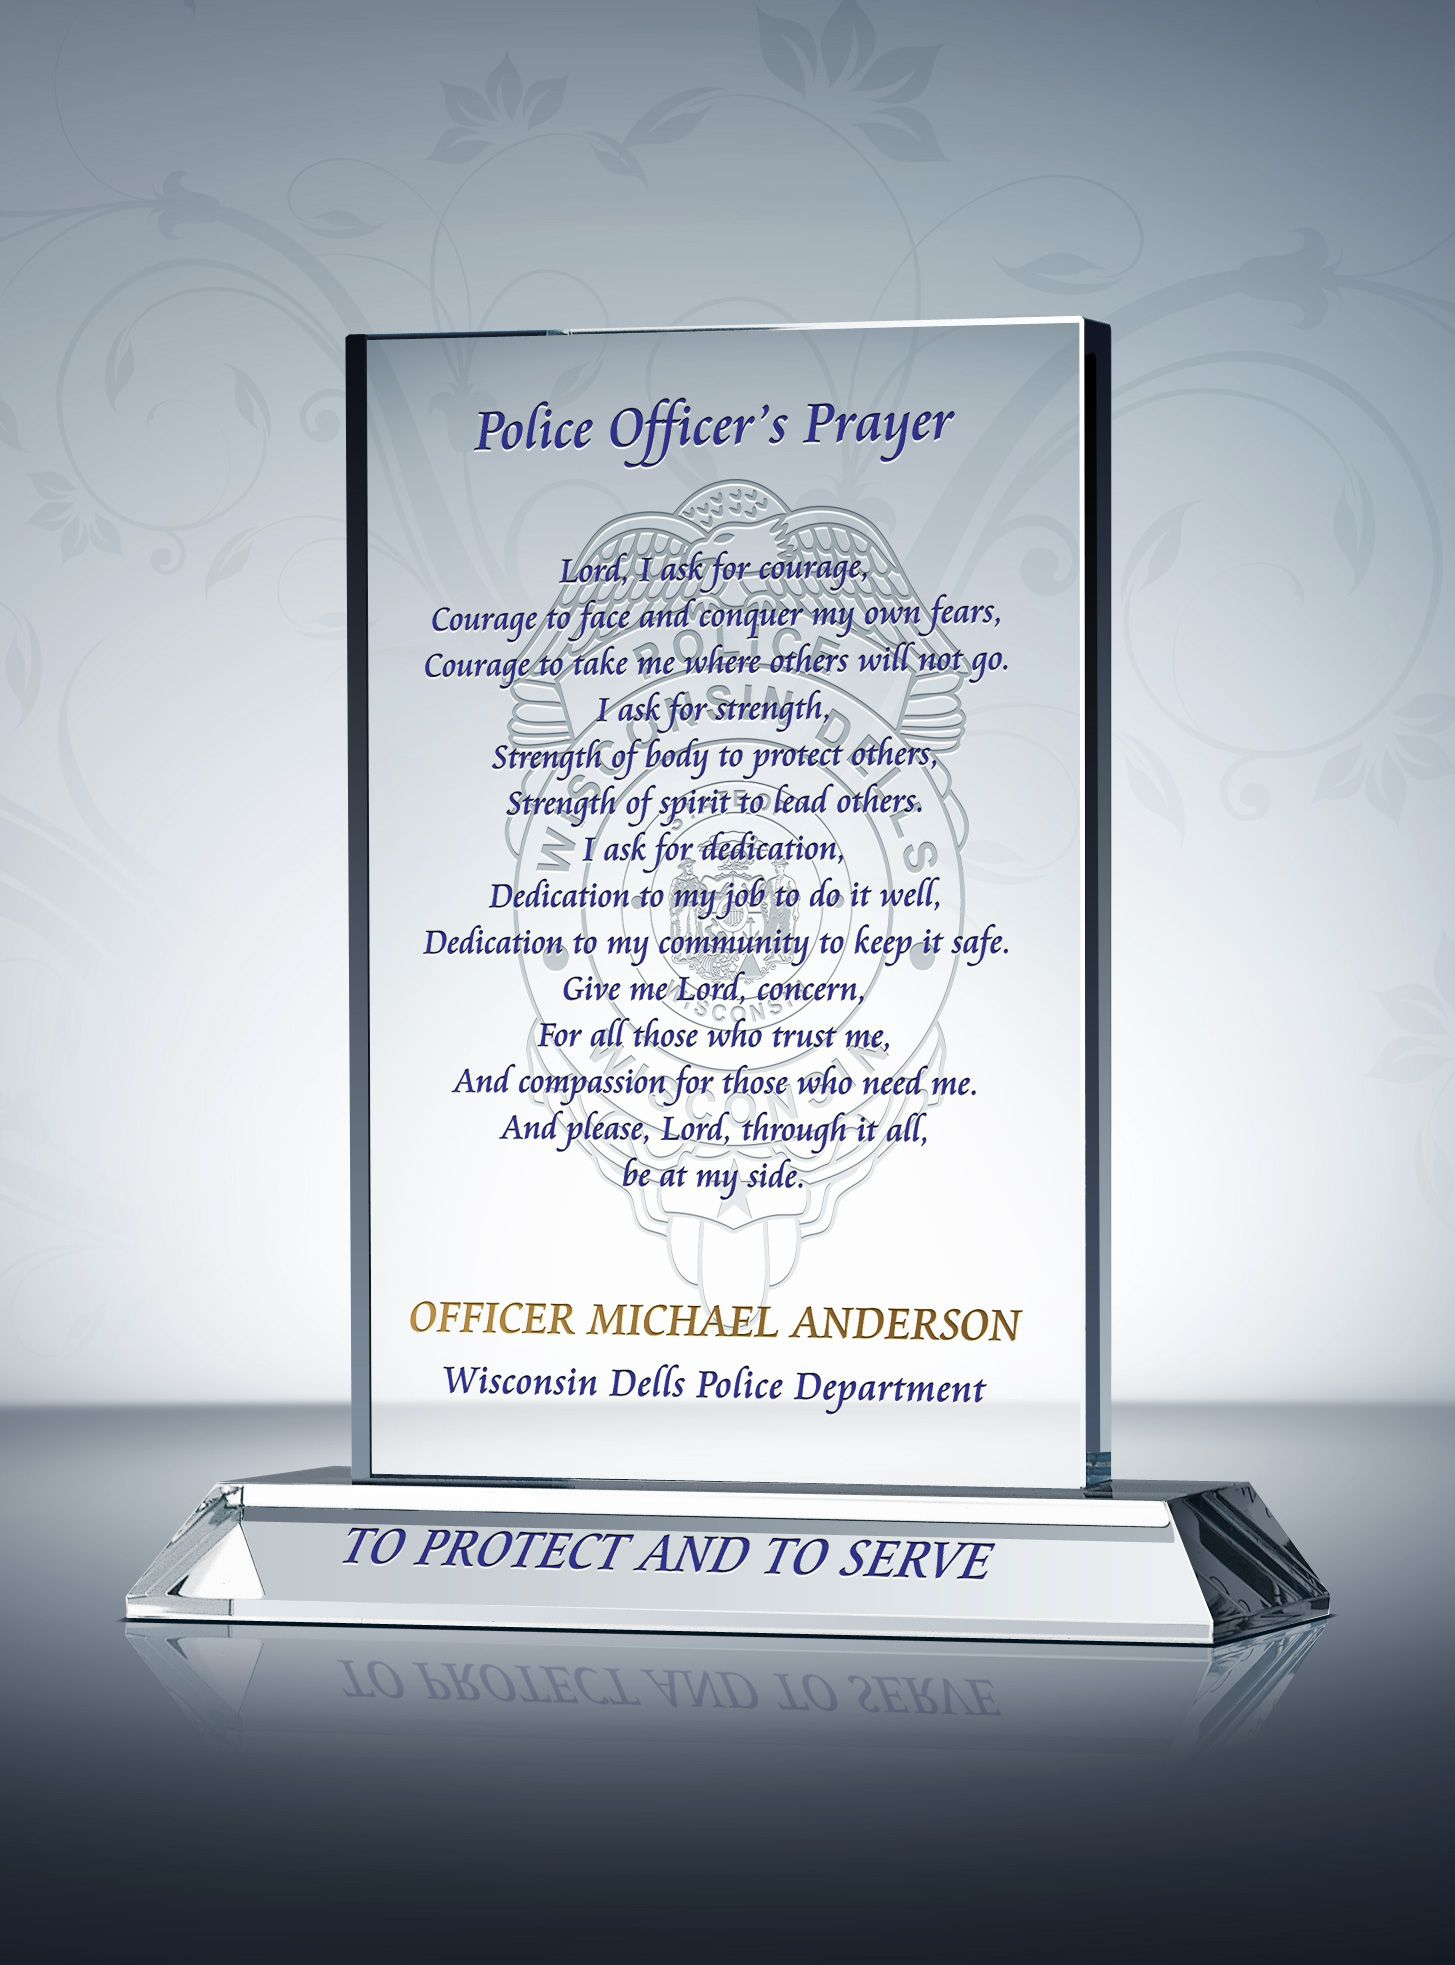 Police Officer Police Officer Police prayer